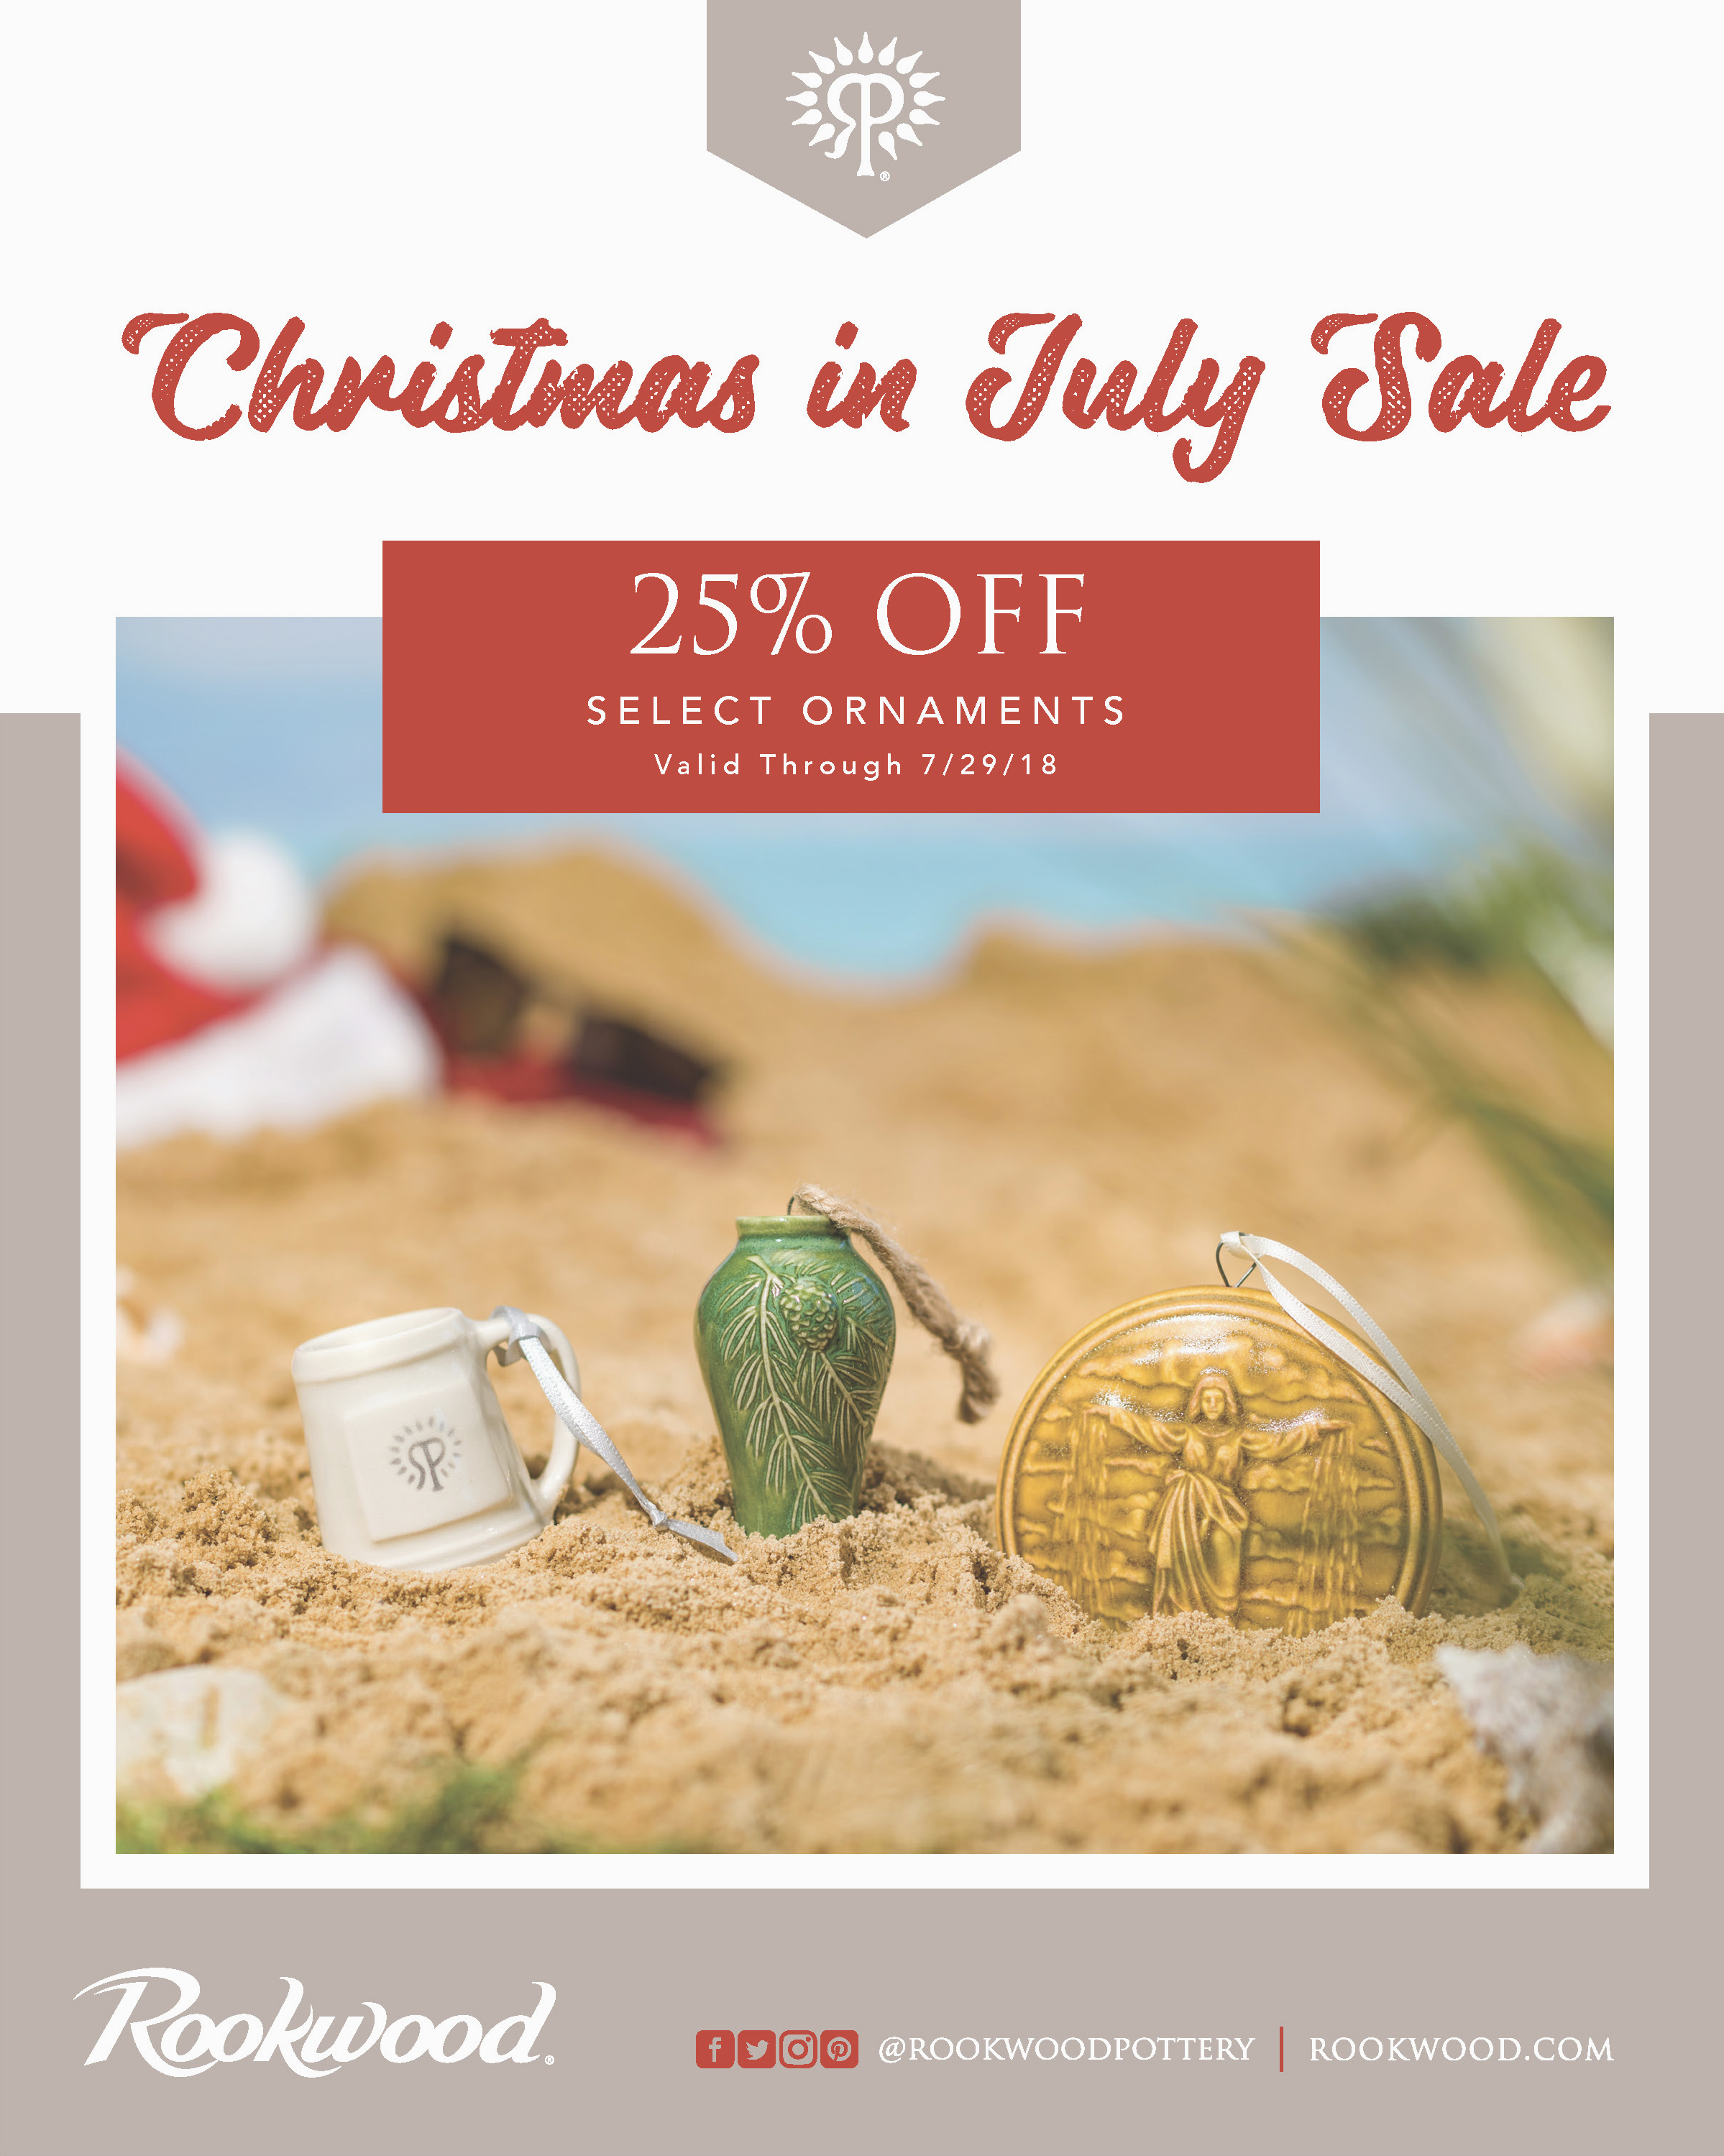 Christmas_In_July_Sale_Poster_8x10_July_2018_Update-2.jpg